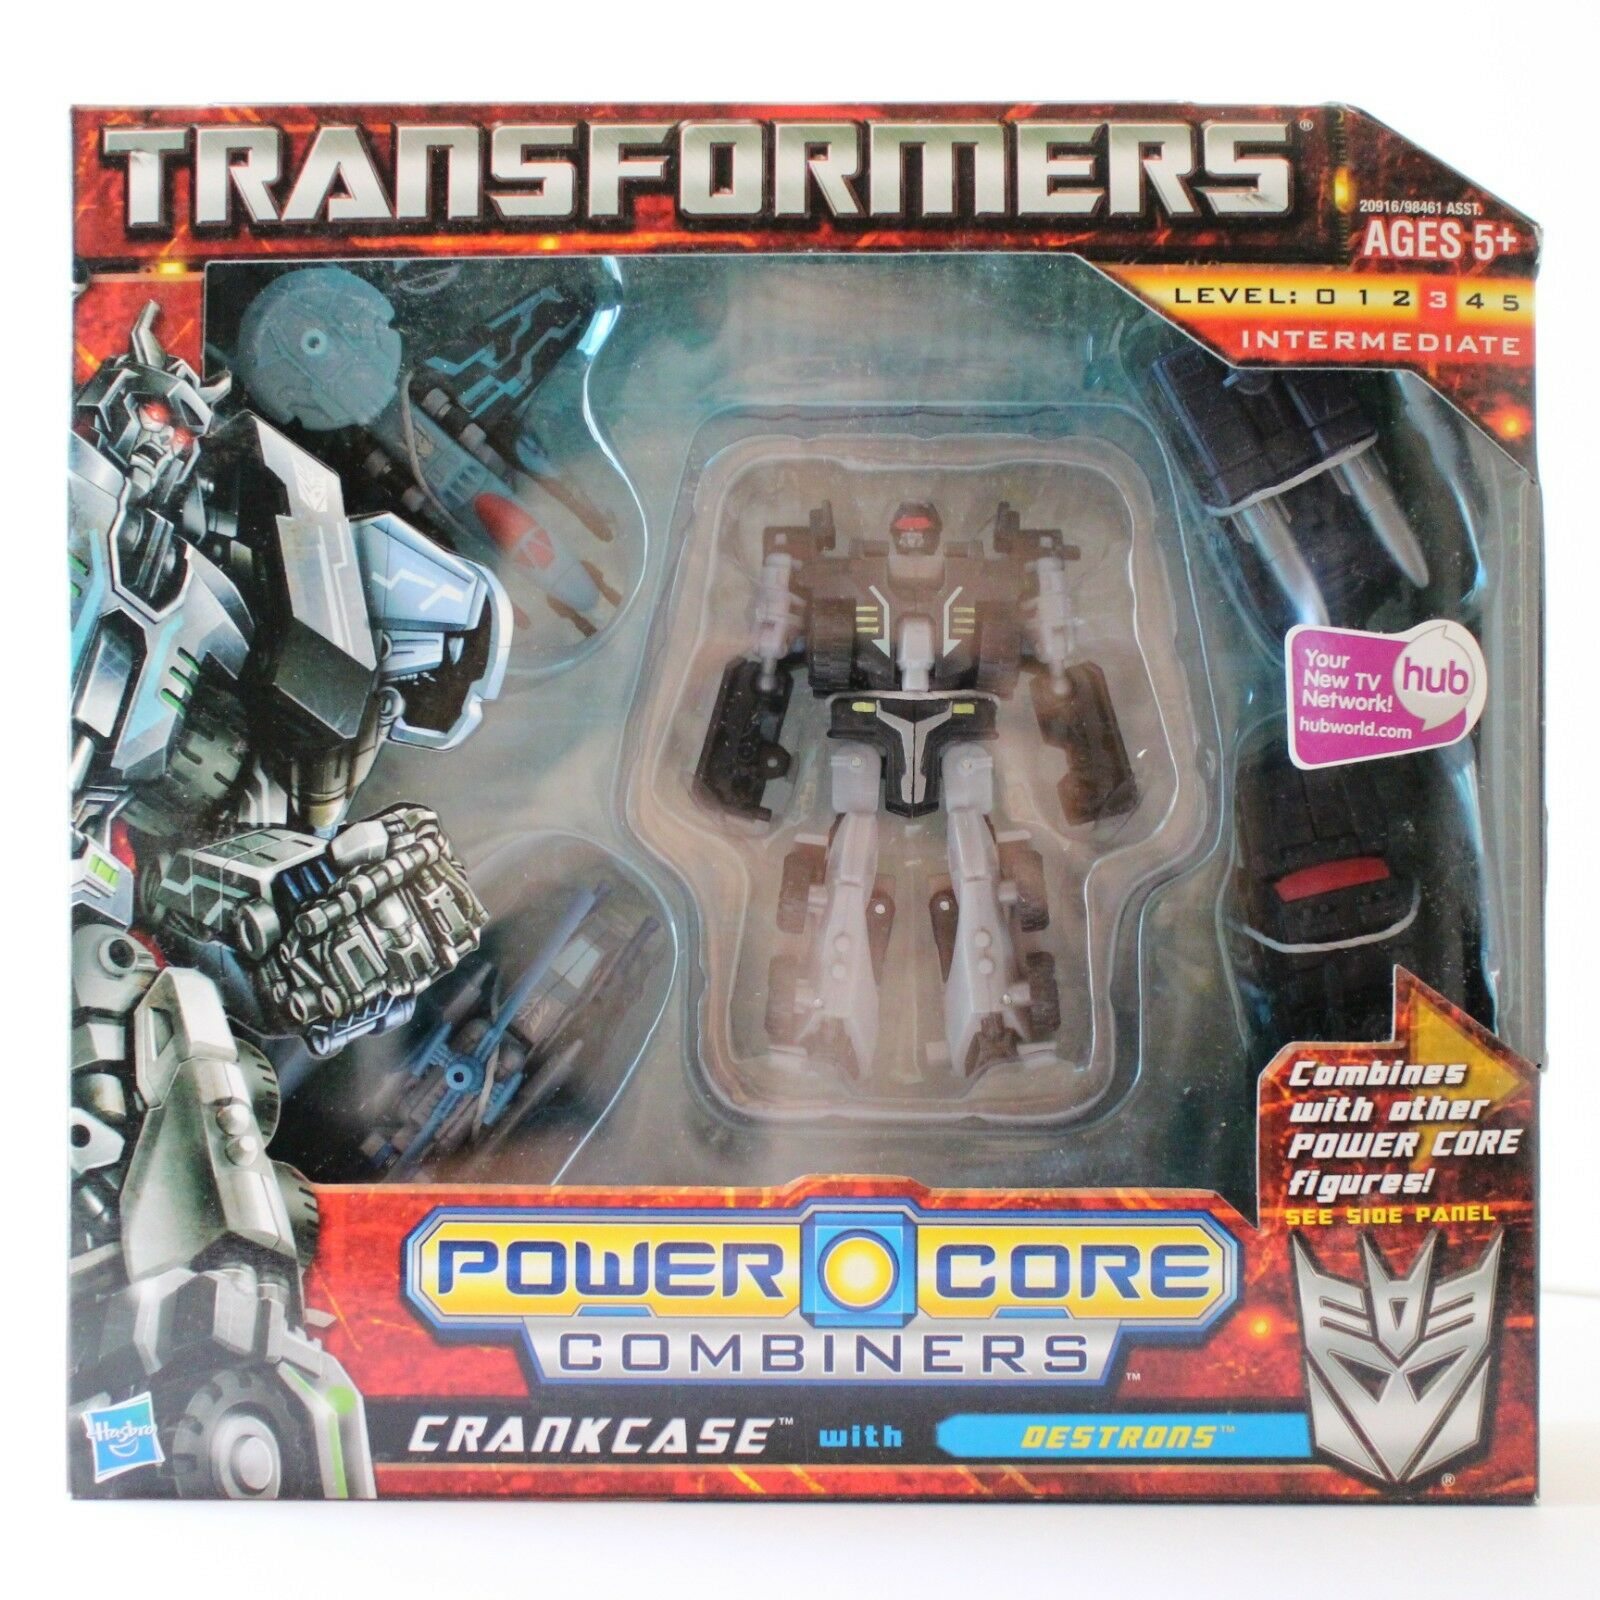 Nuevo Transformers Power Core Combiners. Kit Pcc Cárter con